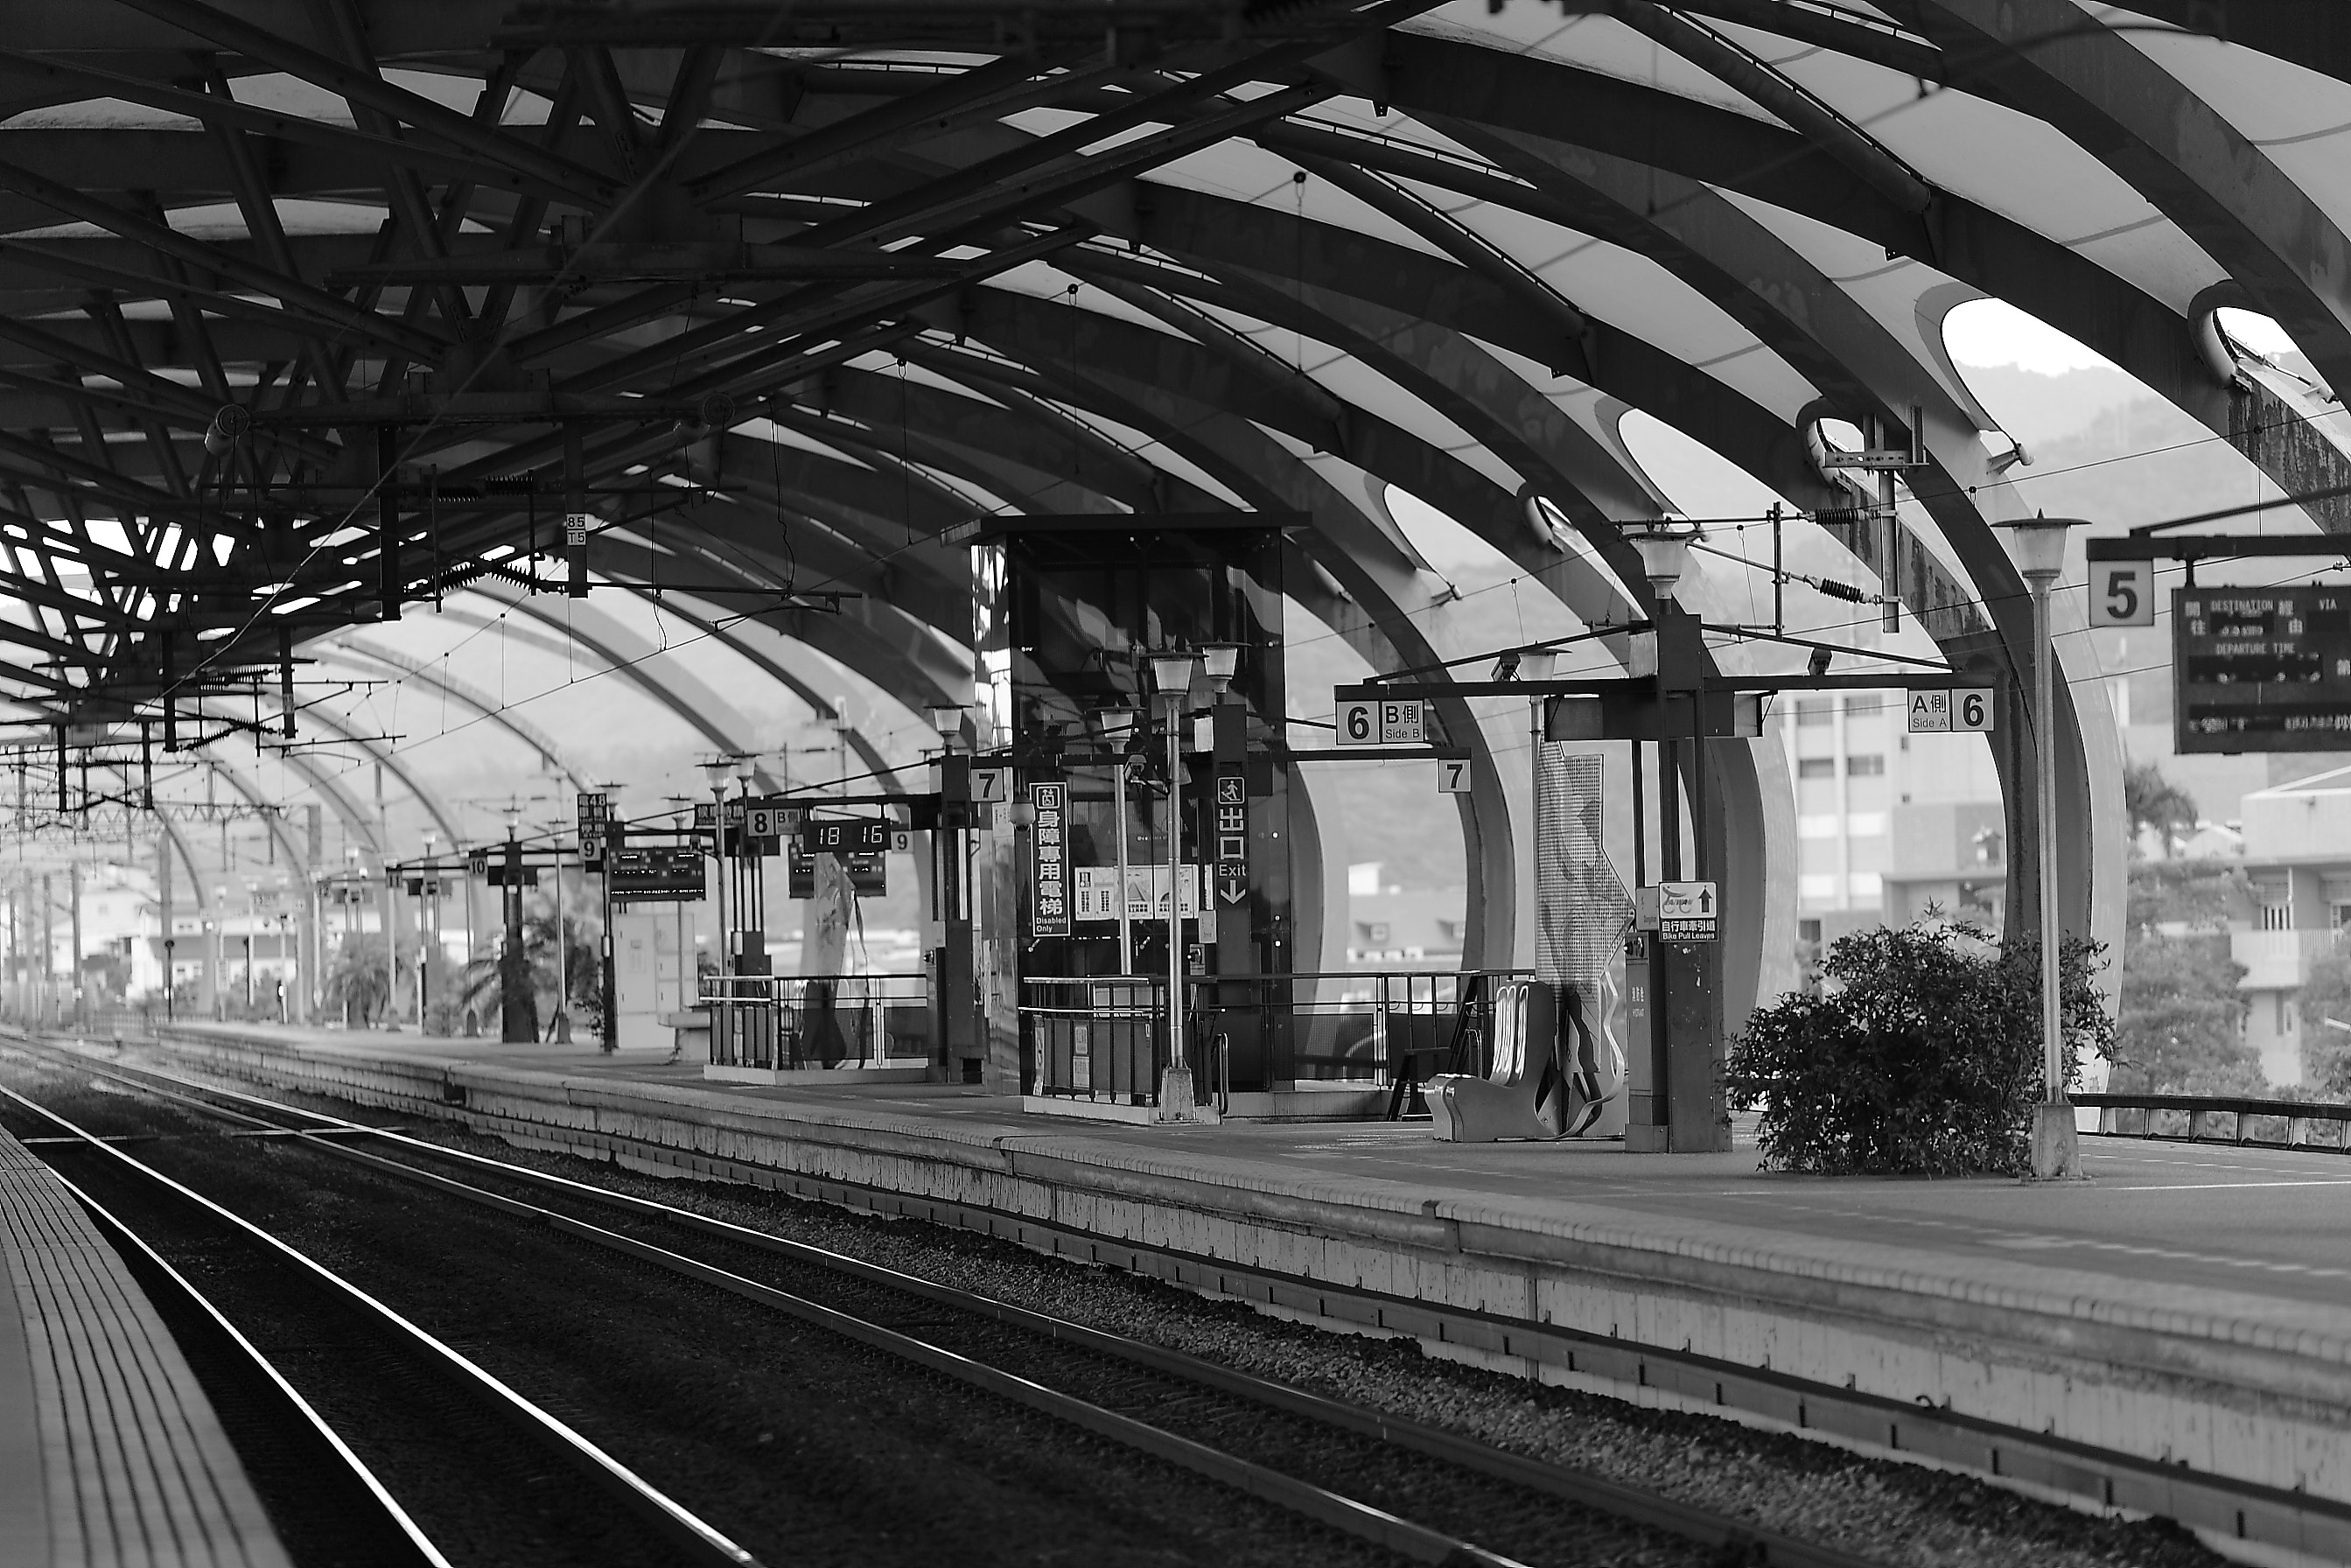 Train Terminal Gray Scale Photo, Black-and-white, City, Empty, Perspective, HQ Photo